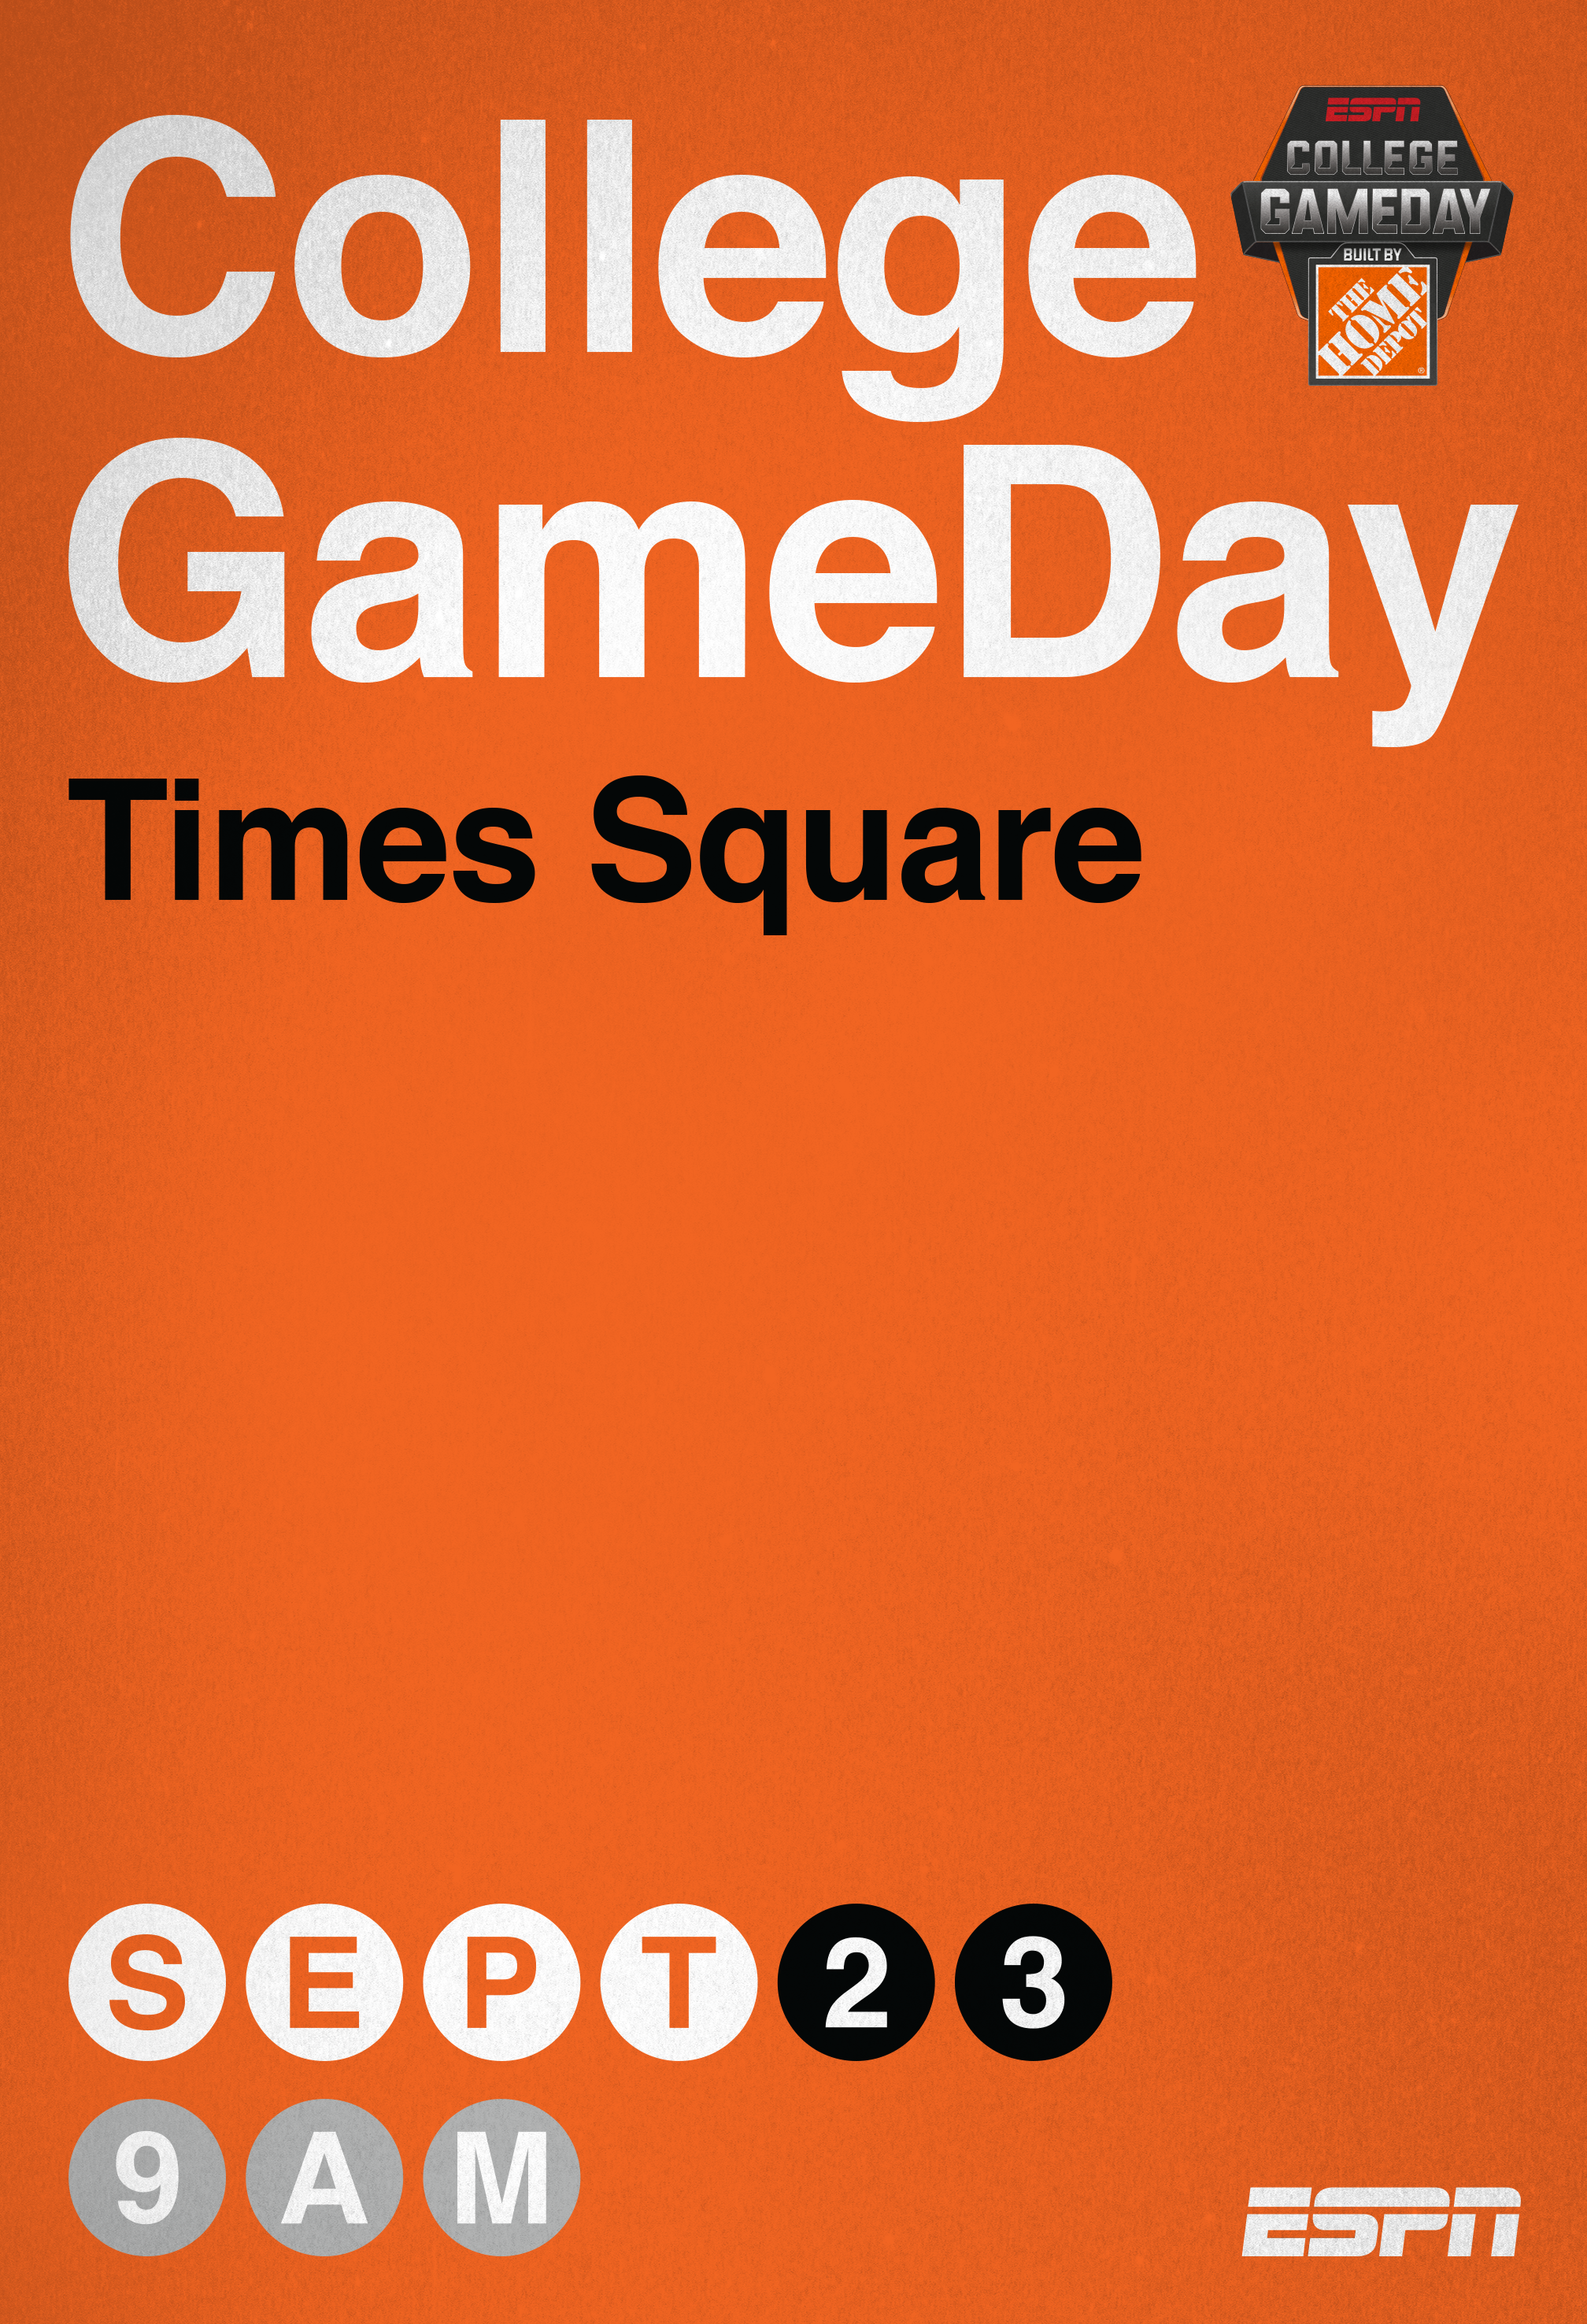 NYC_GAMEDAY_Posters_1_v04.png